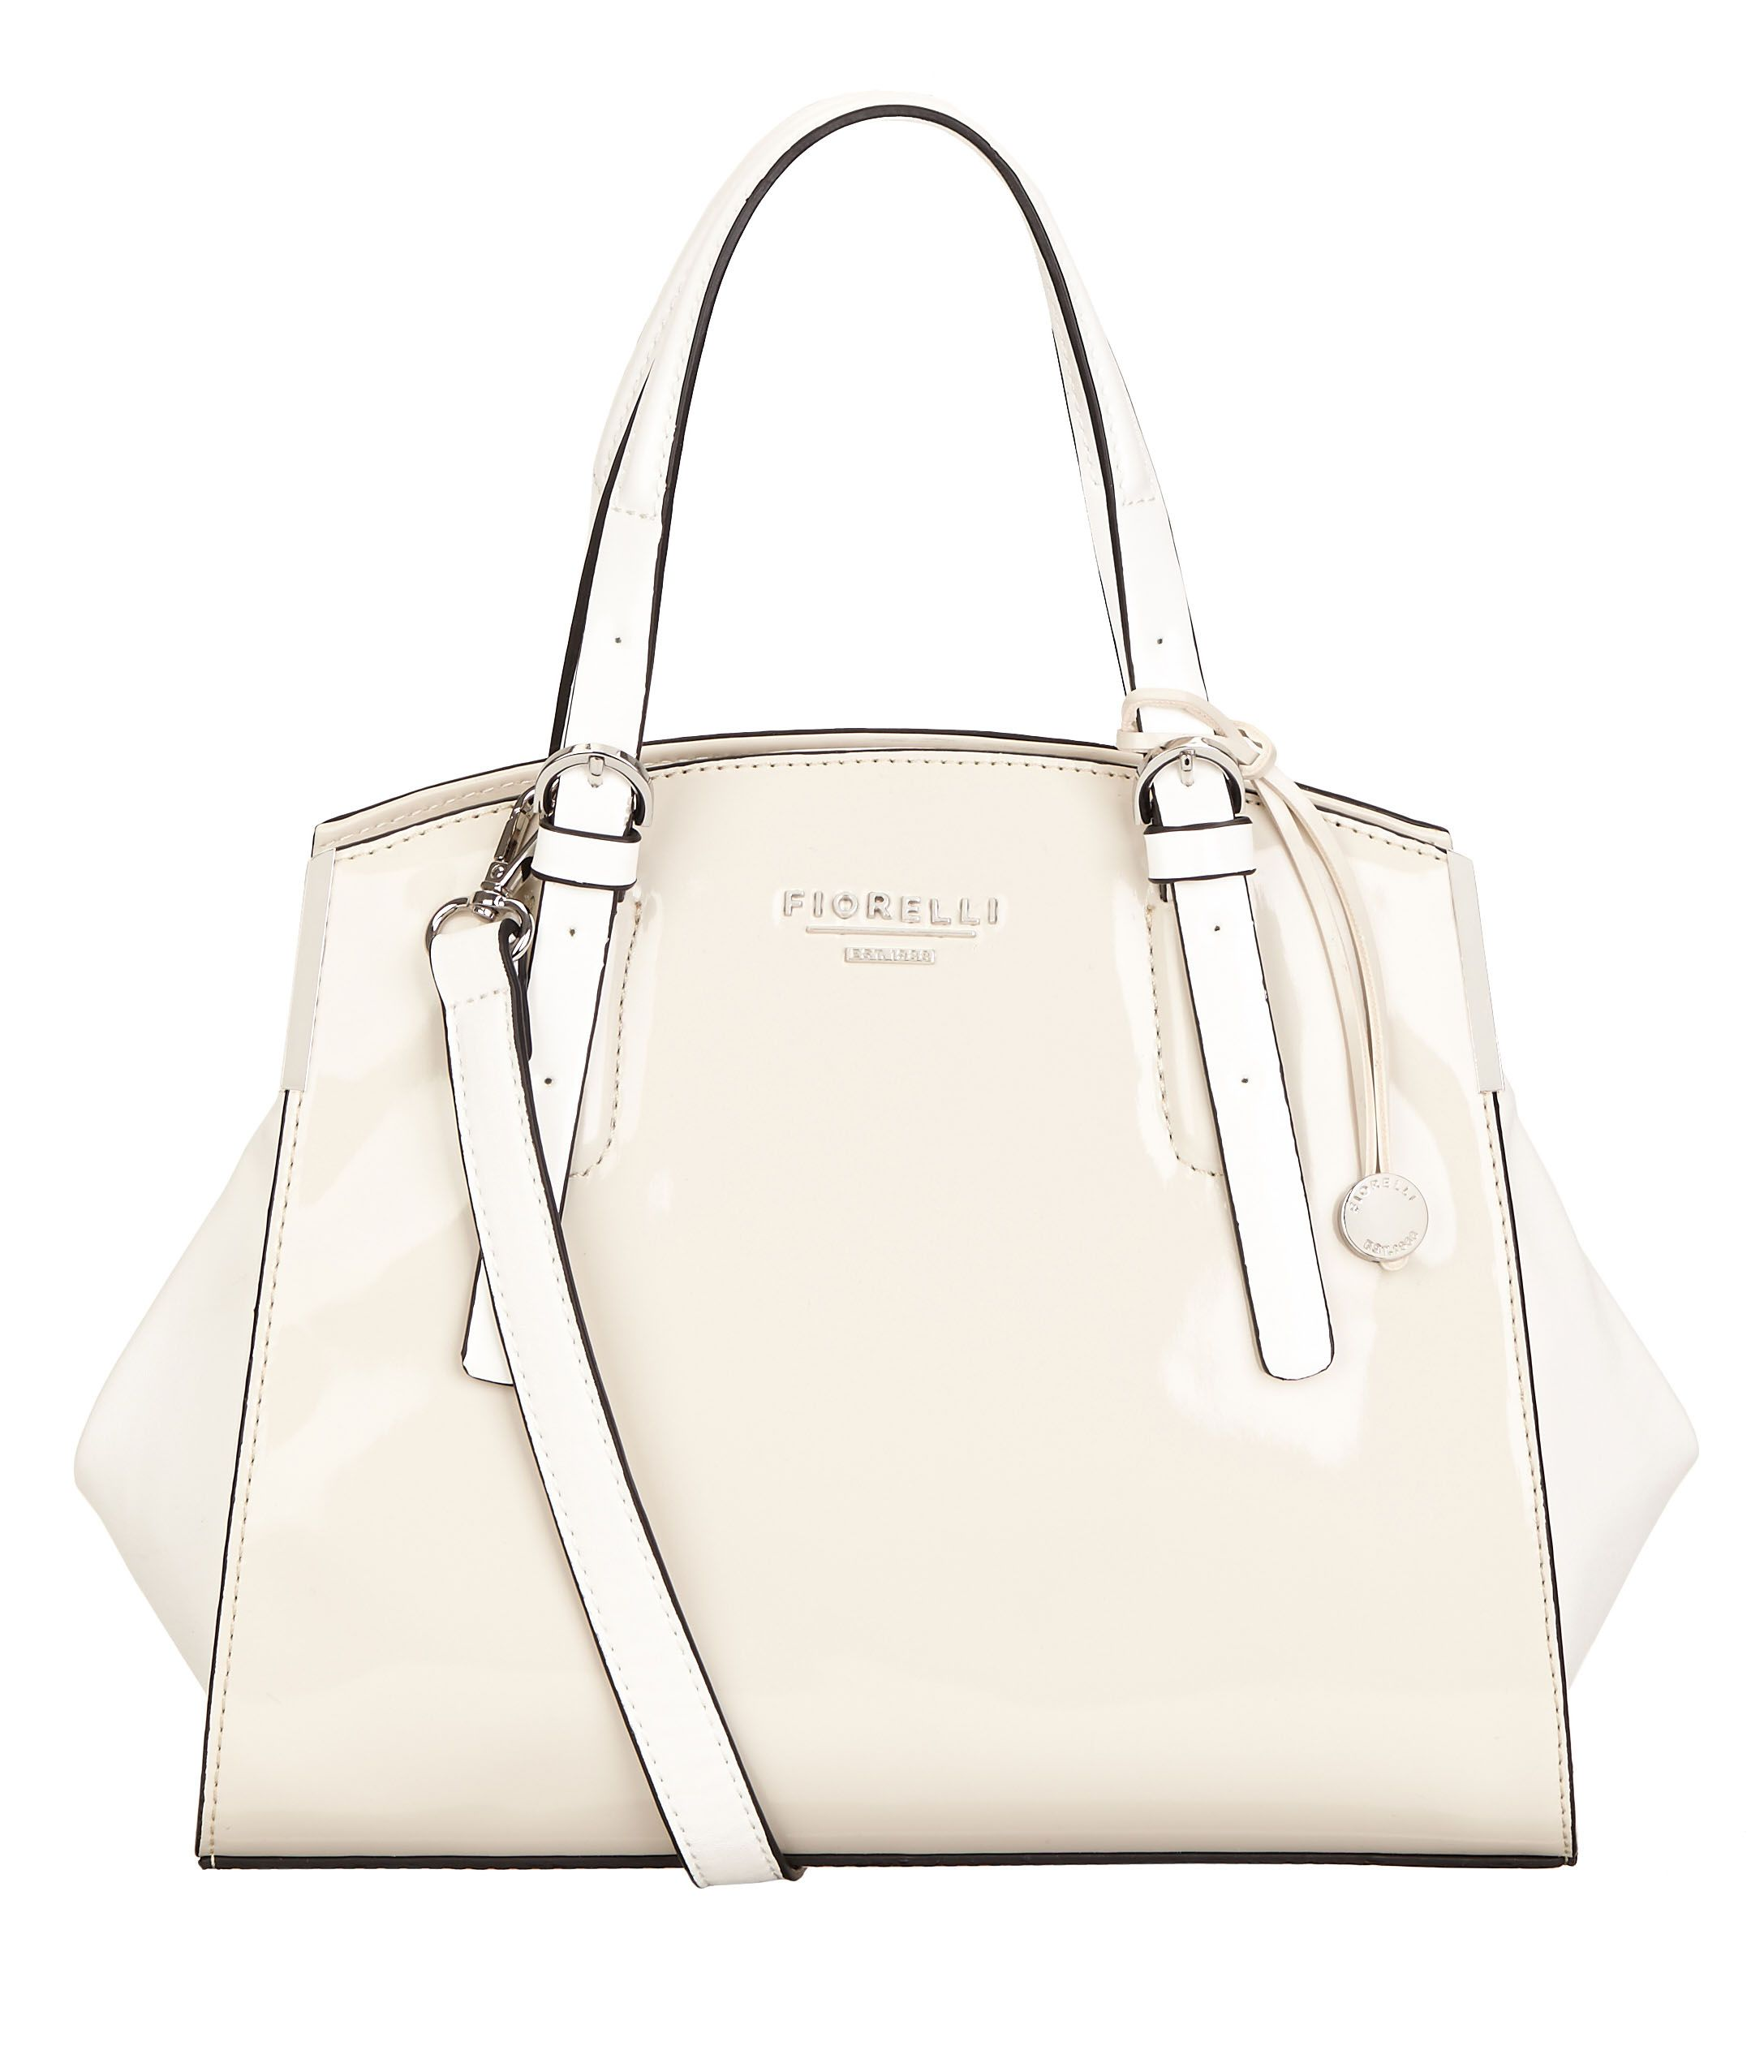 Fiorelli Bella Rose Handbag Soft White